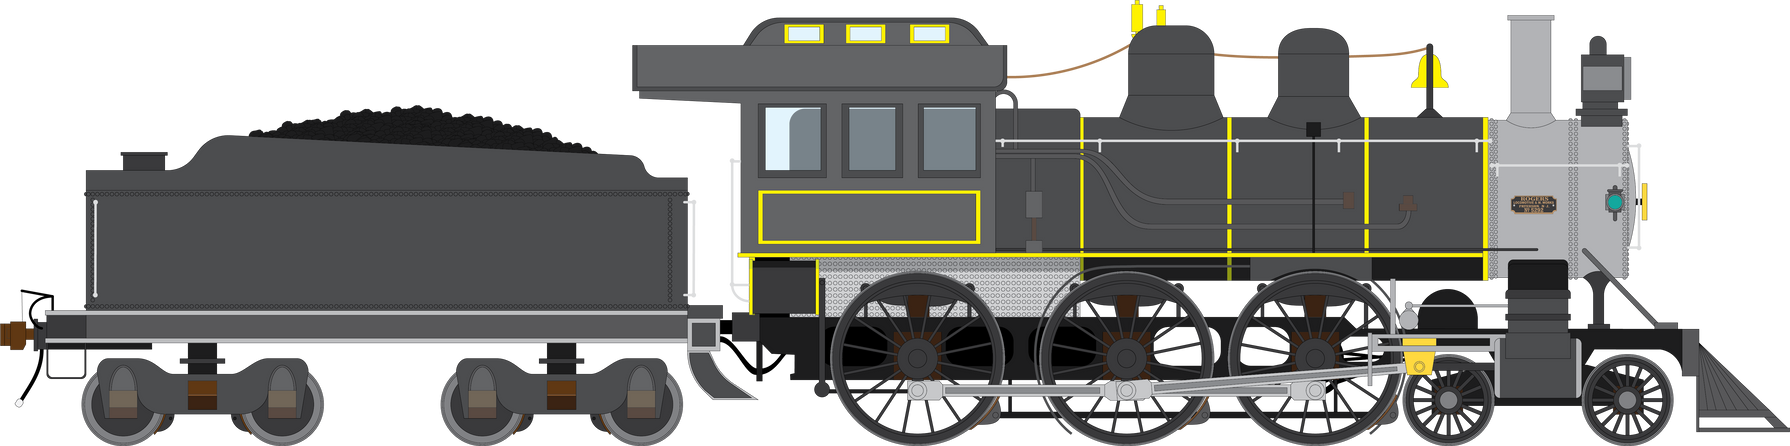 Steam Locomotive Drawings by vincentberkan on DeviantArt